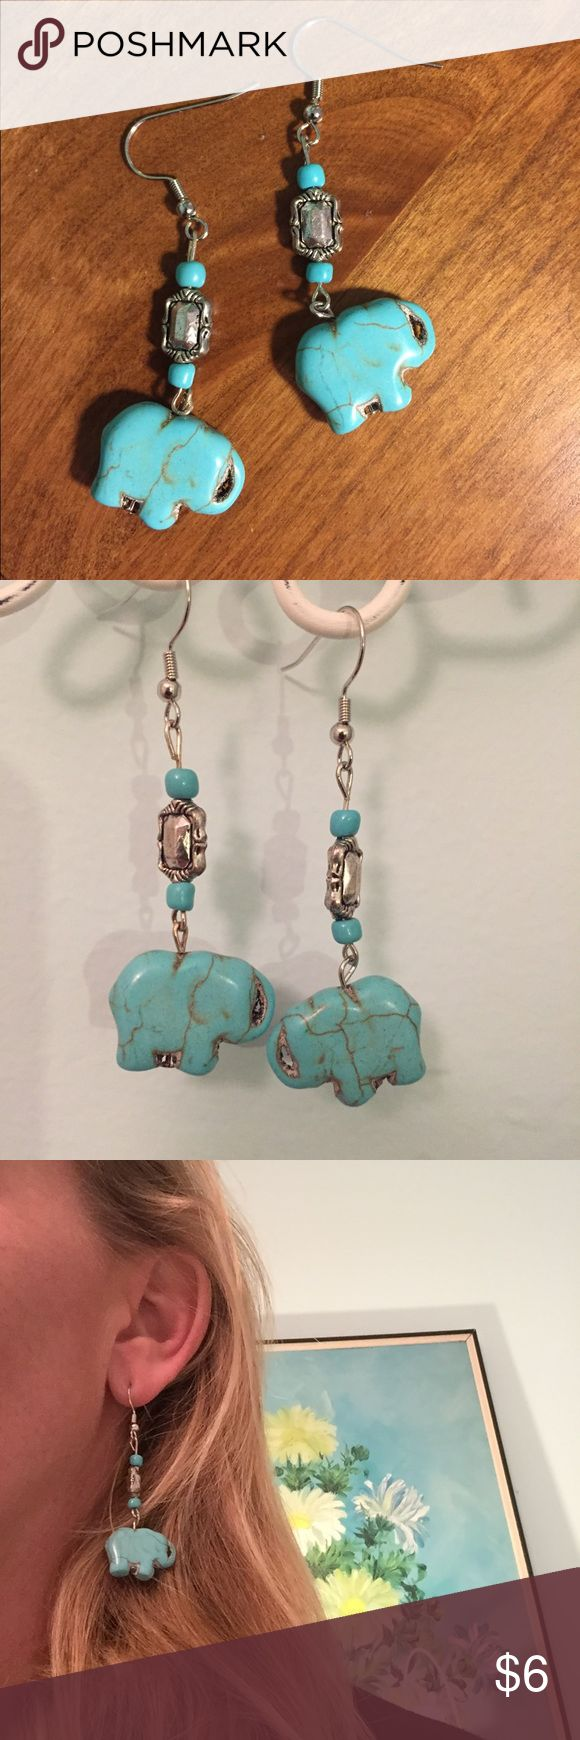 Turquoise elephant earrings Hand made turquoise and sterling dangly earrings Jewelry Earrings